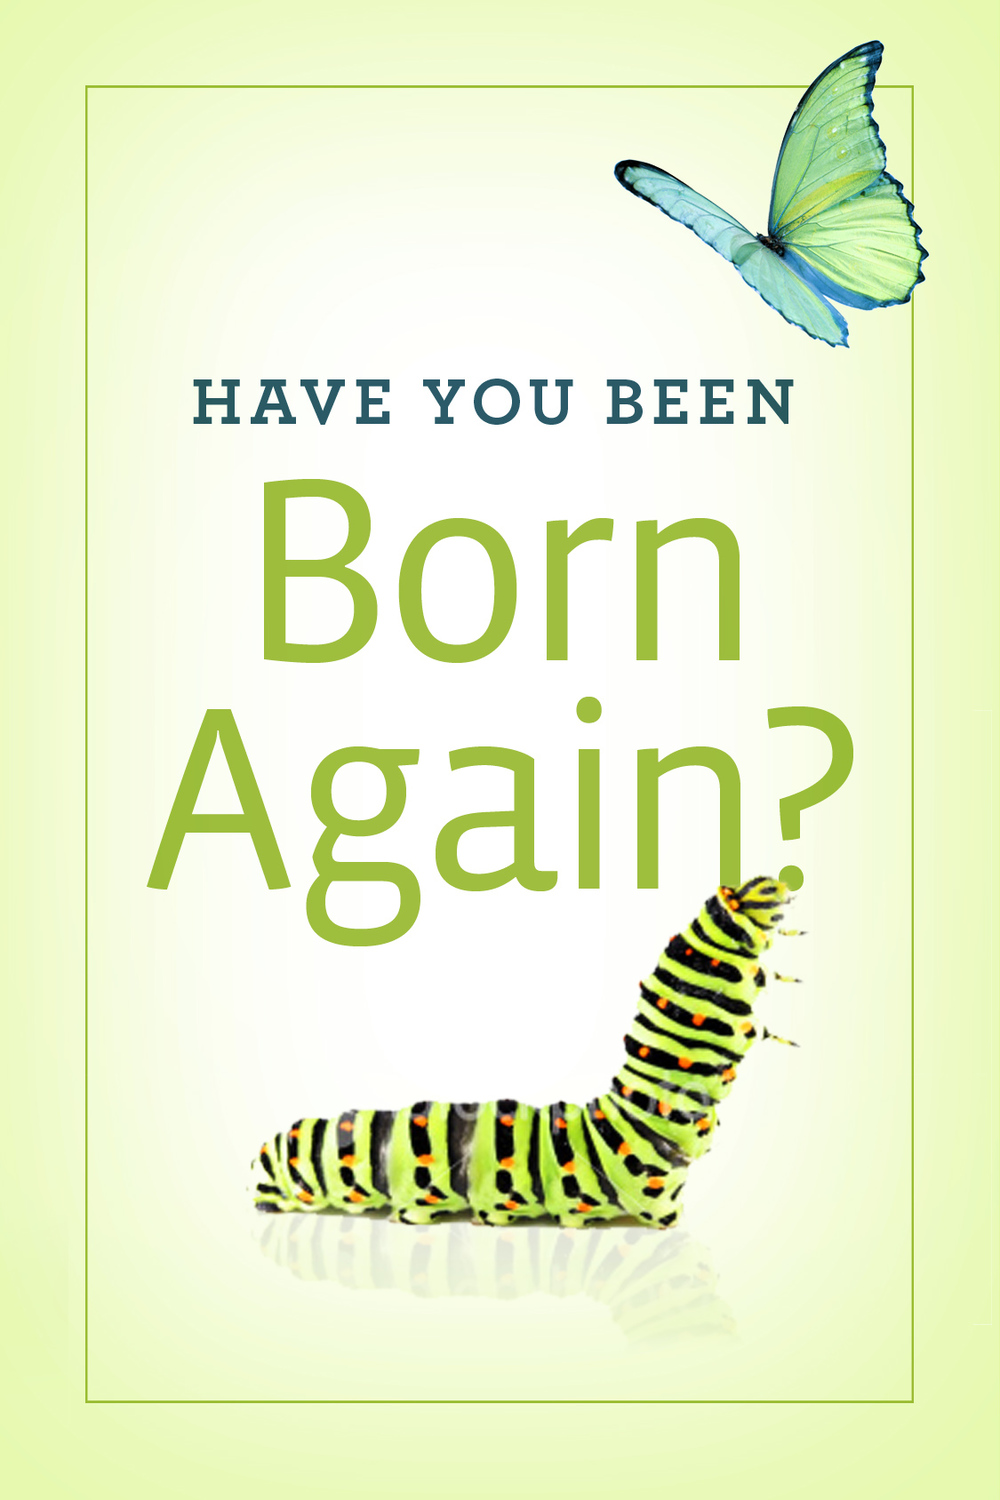 Have You Been Born Again?